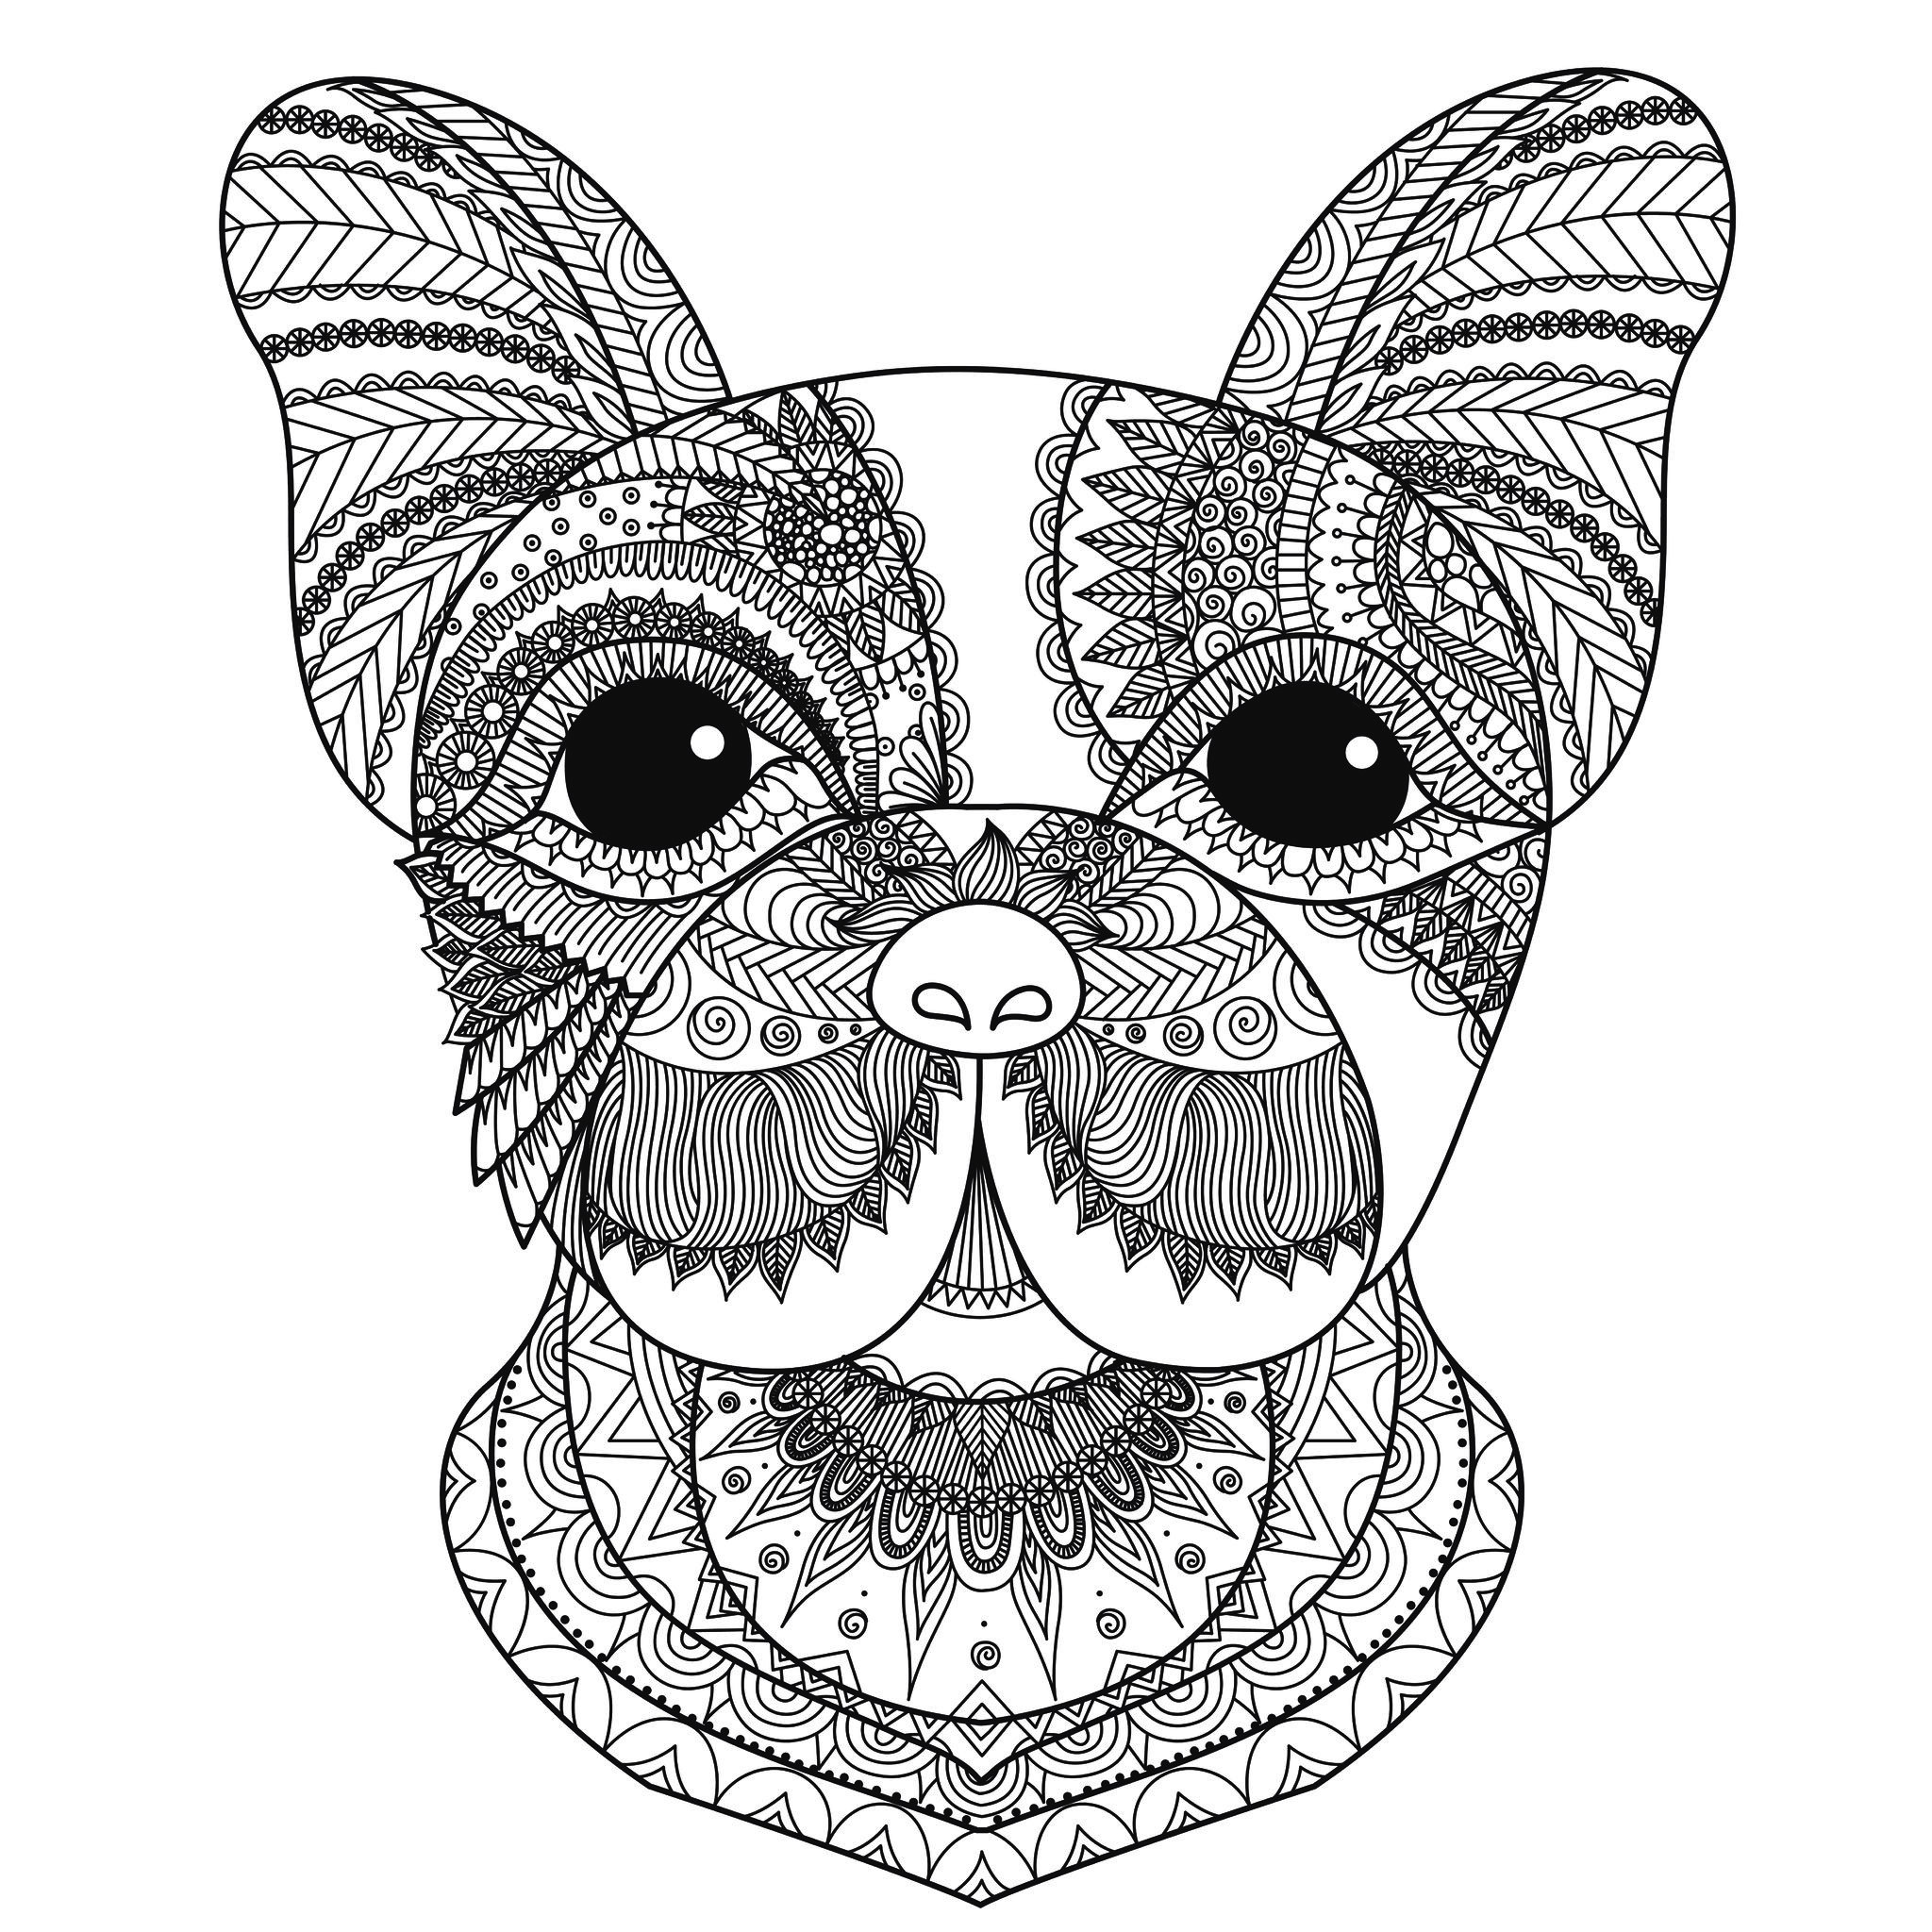 Best ideas about Dogs Coloring Pages For Adults . Save or Pin Dog head bimdeedee Dogs Adult Coloring Pages Now.